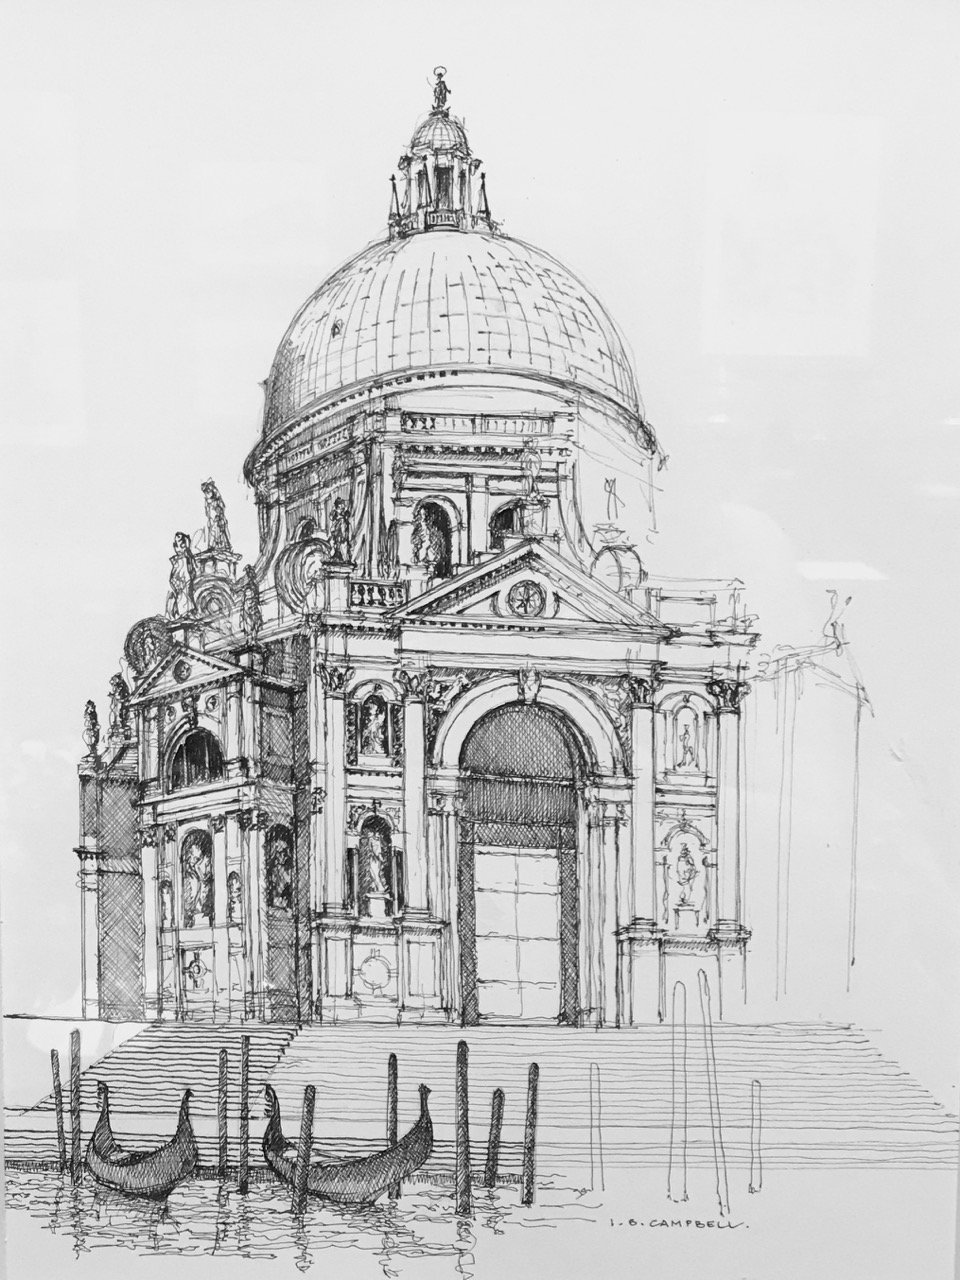 Ian Stuart Campbell, sketch from Architectural Tourist II